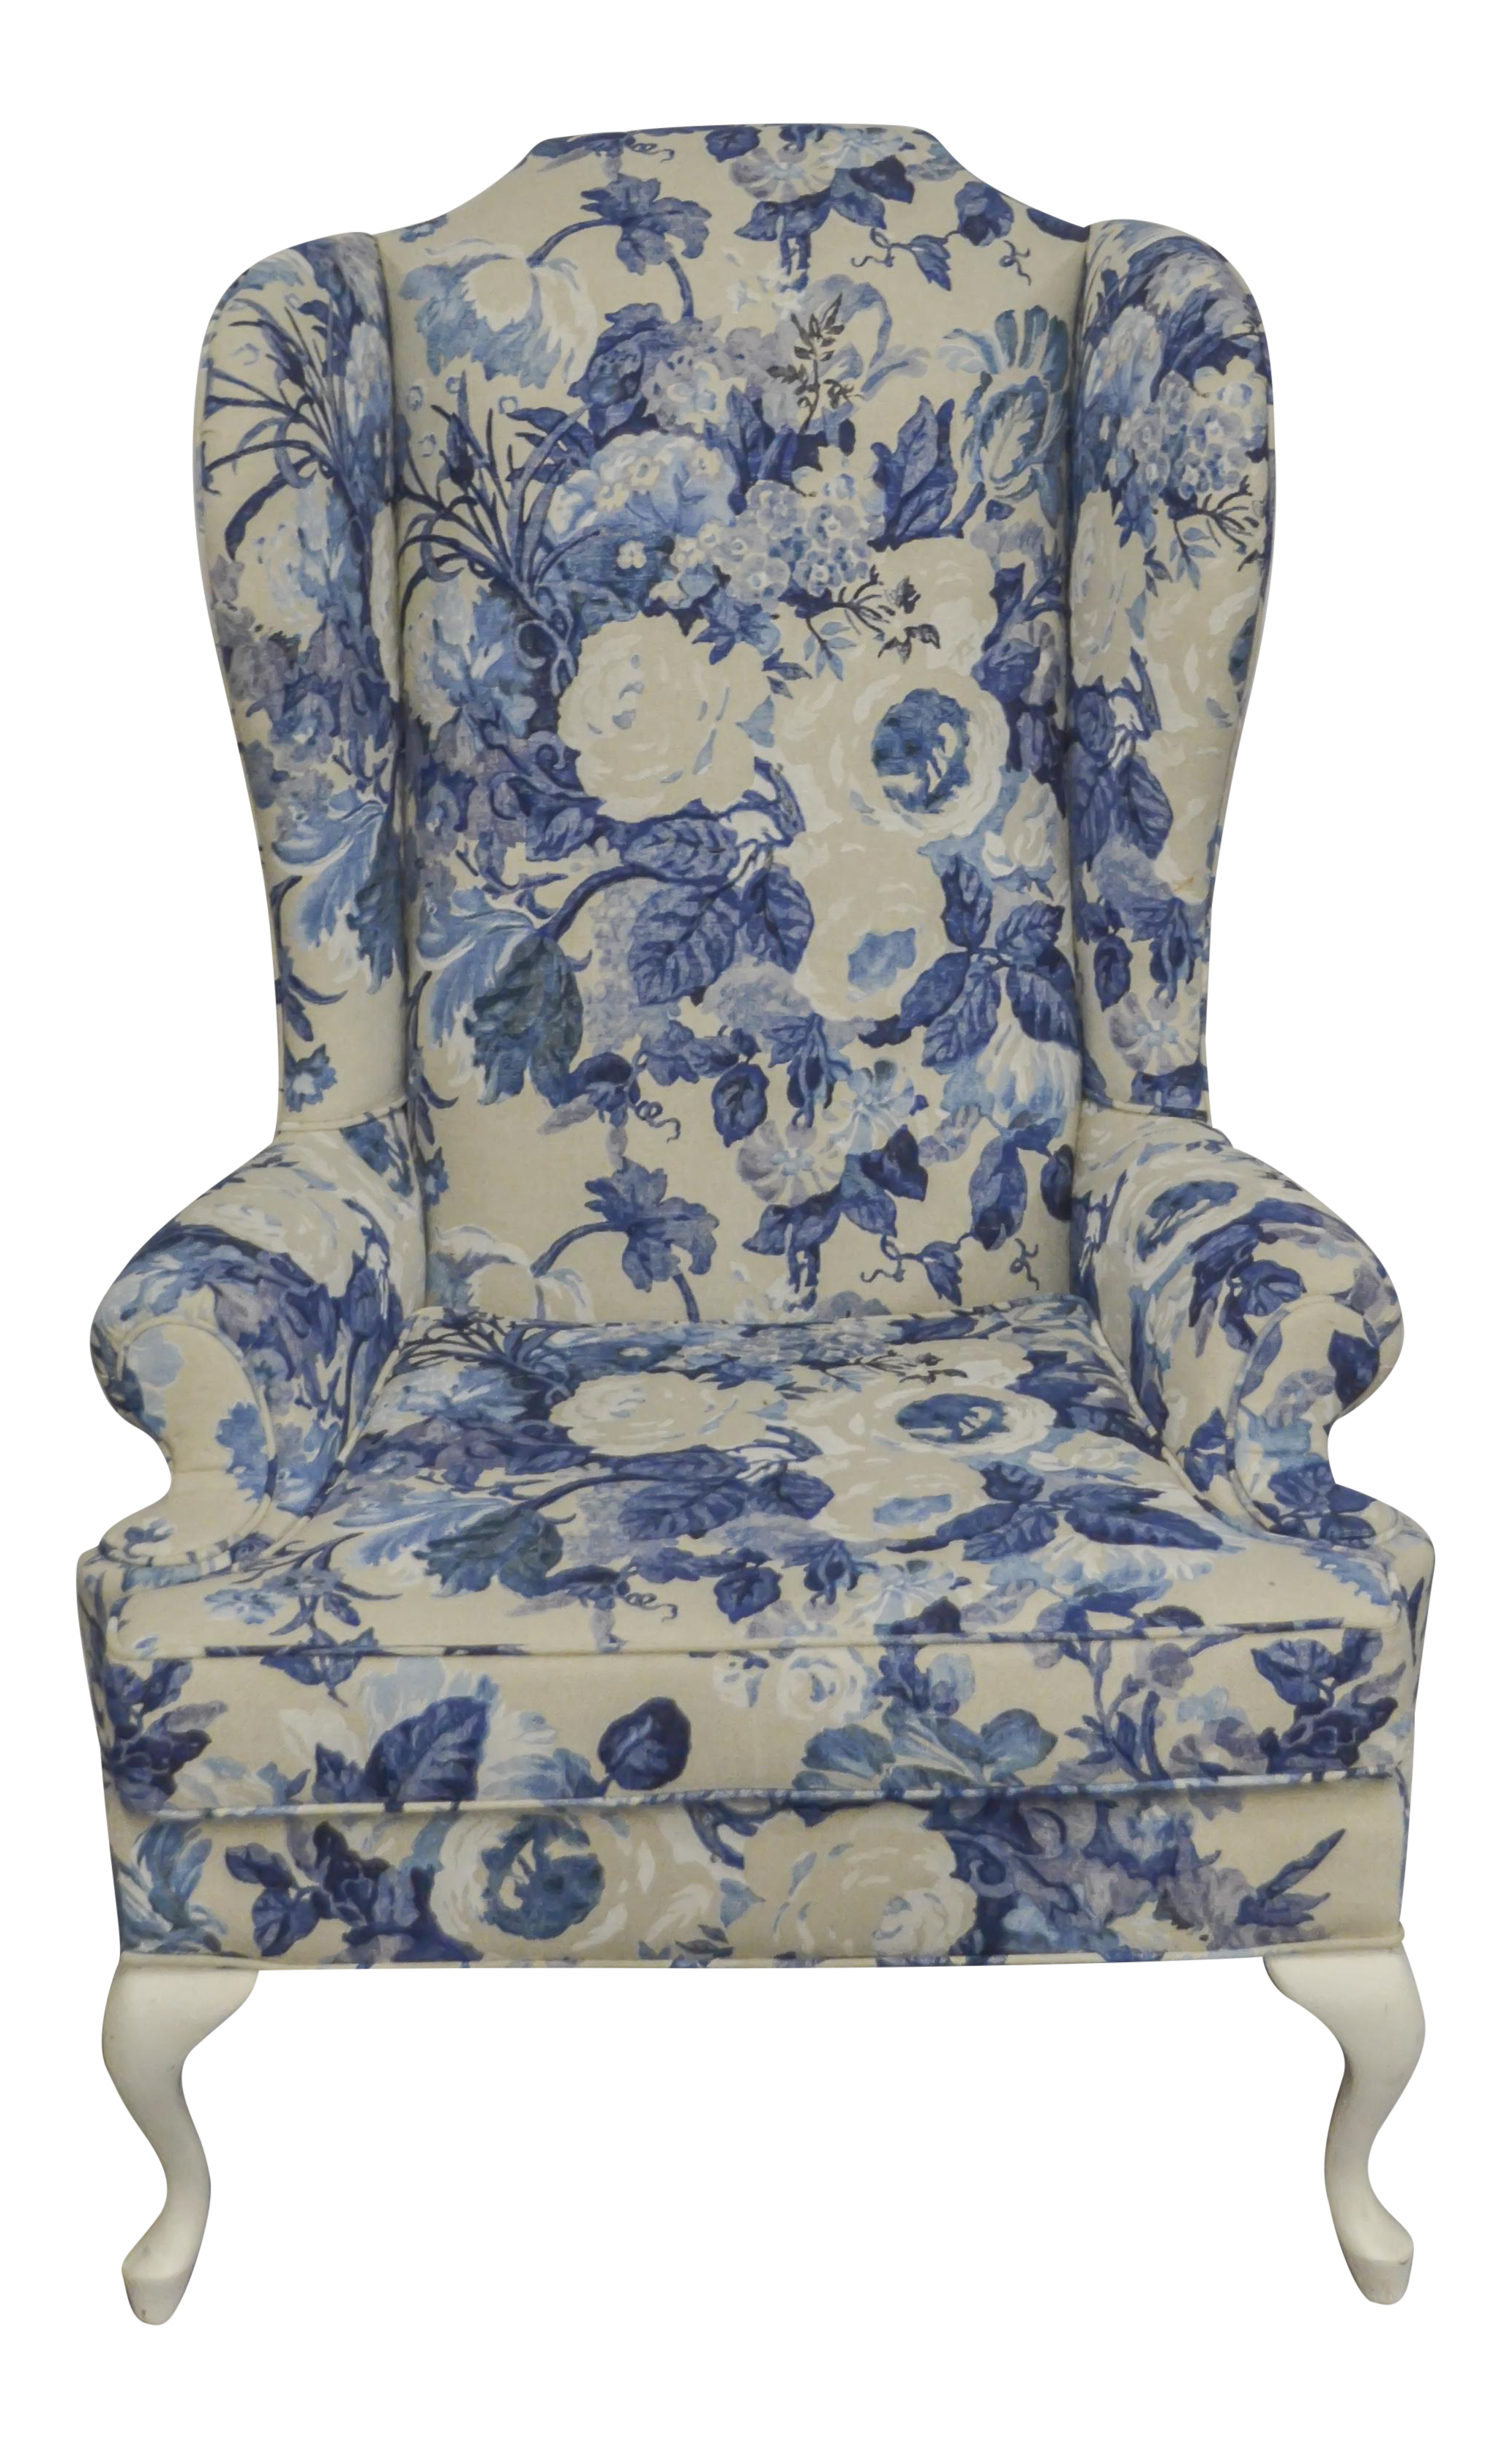 Vintage Duralee Linen Blue & White Floral Wing Chair